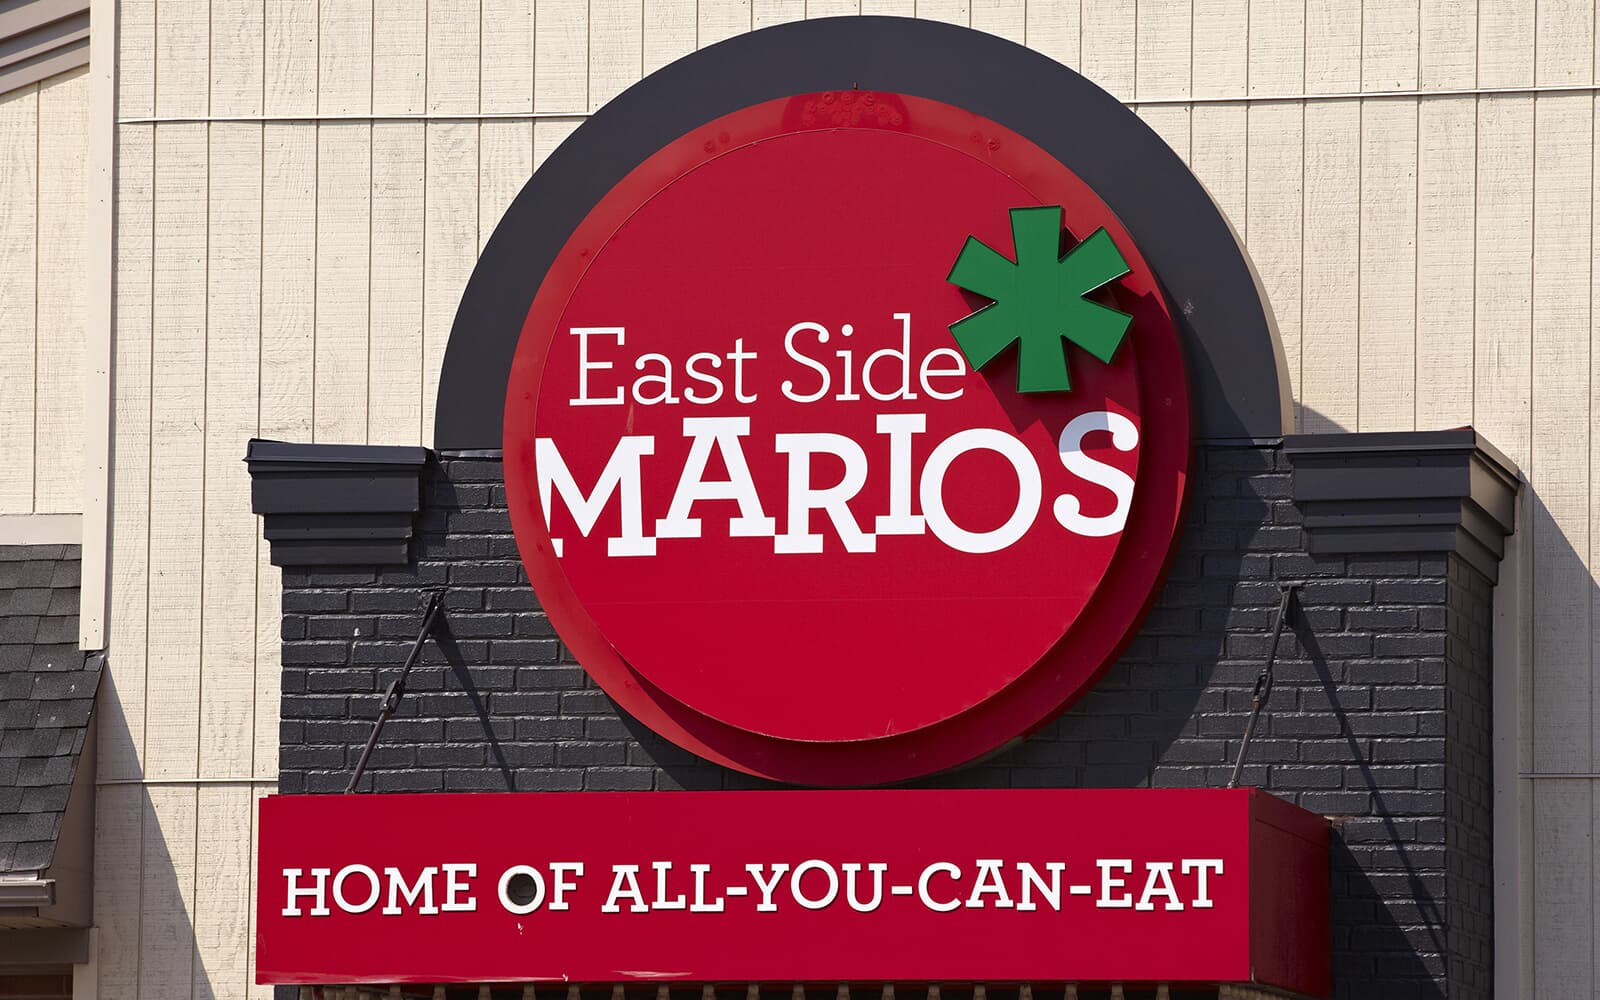 East Side Marios in Baxter, ON